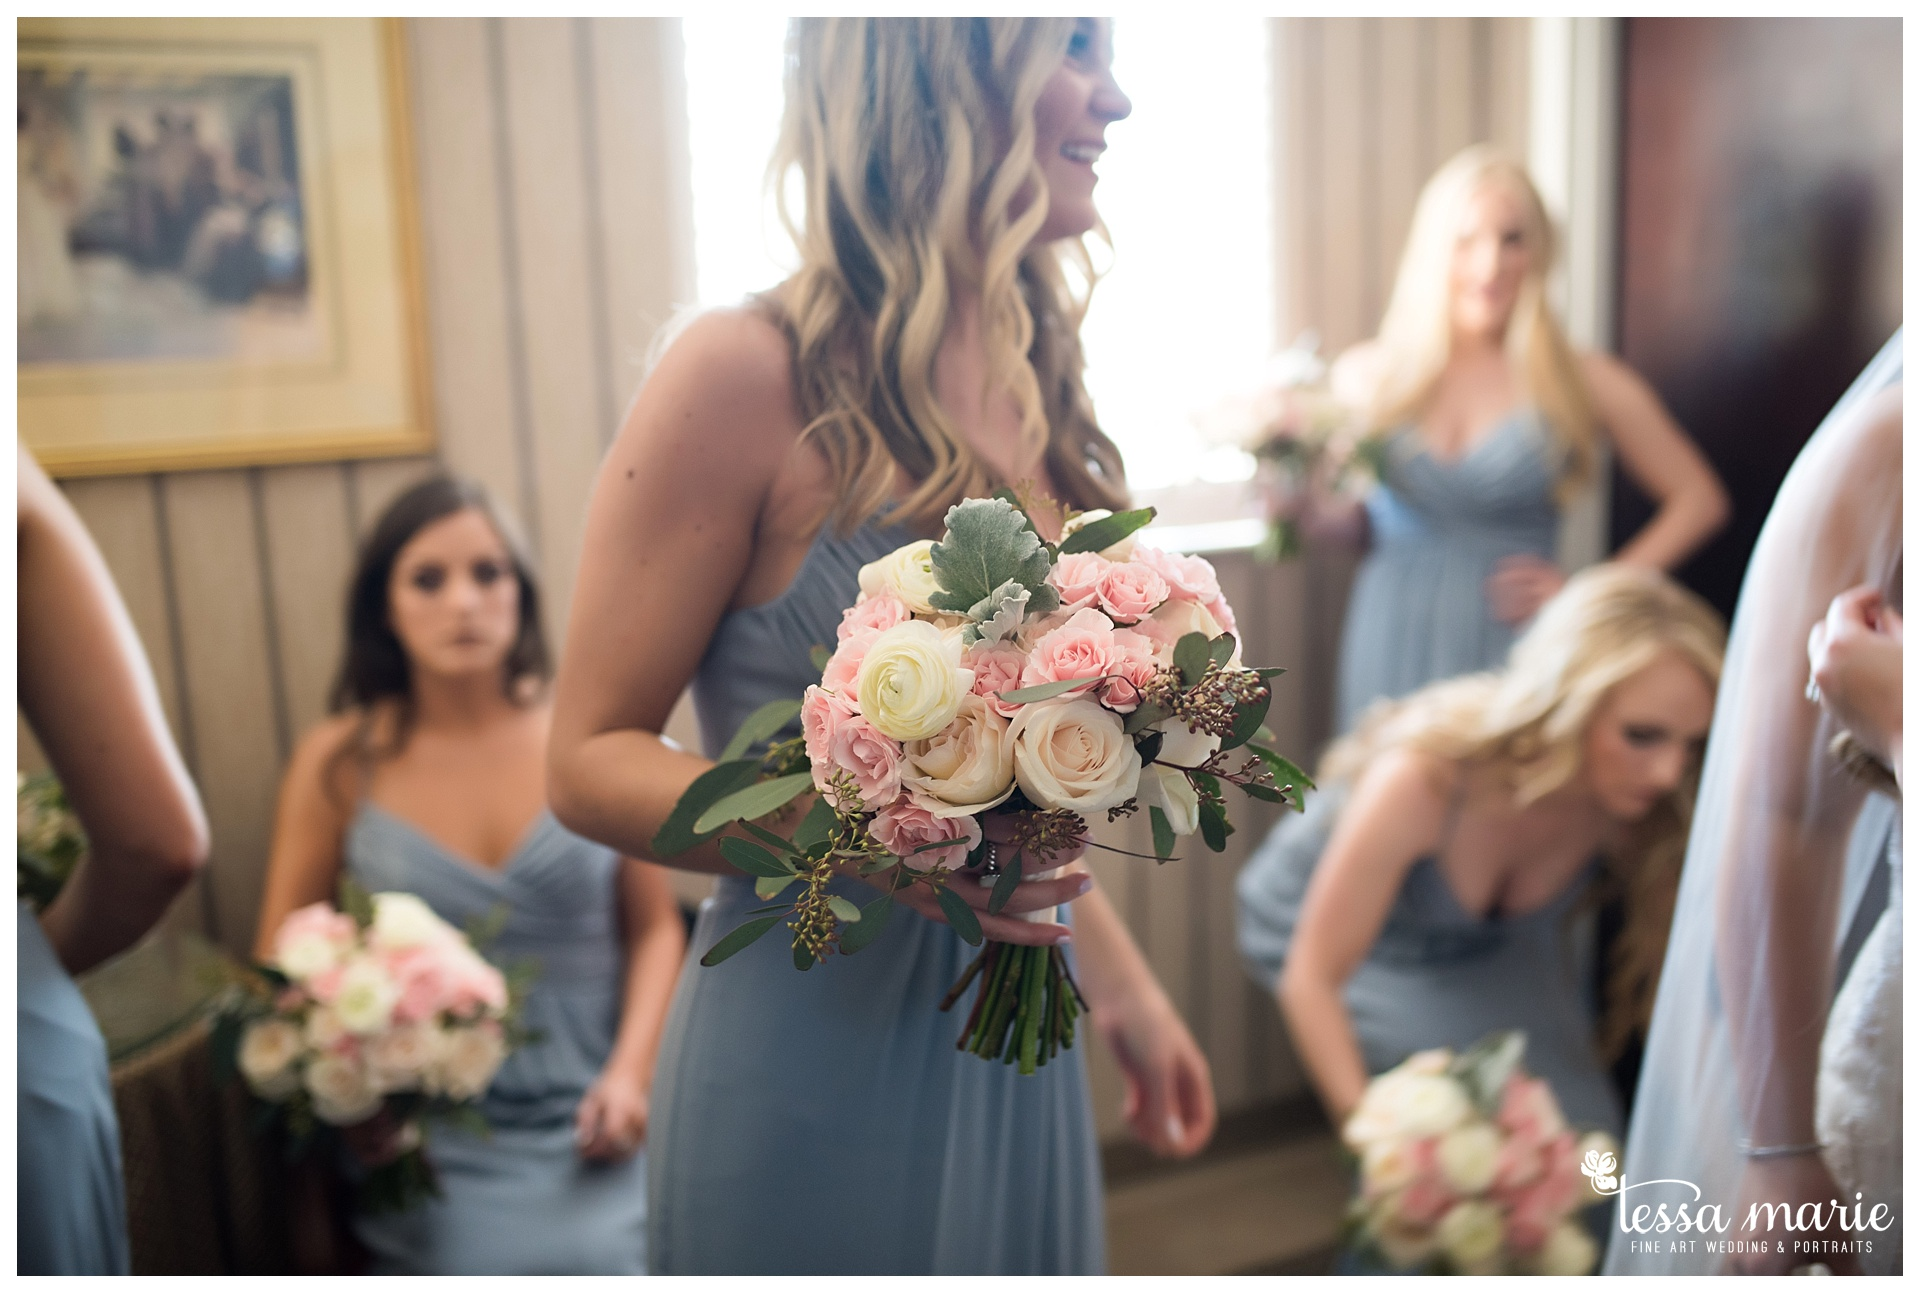 tessa_marie_weddings_legacy_story_focused_wedding_pictures_atlanta_wedding_photographer_0106